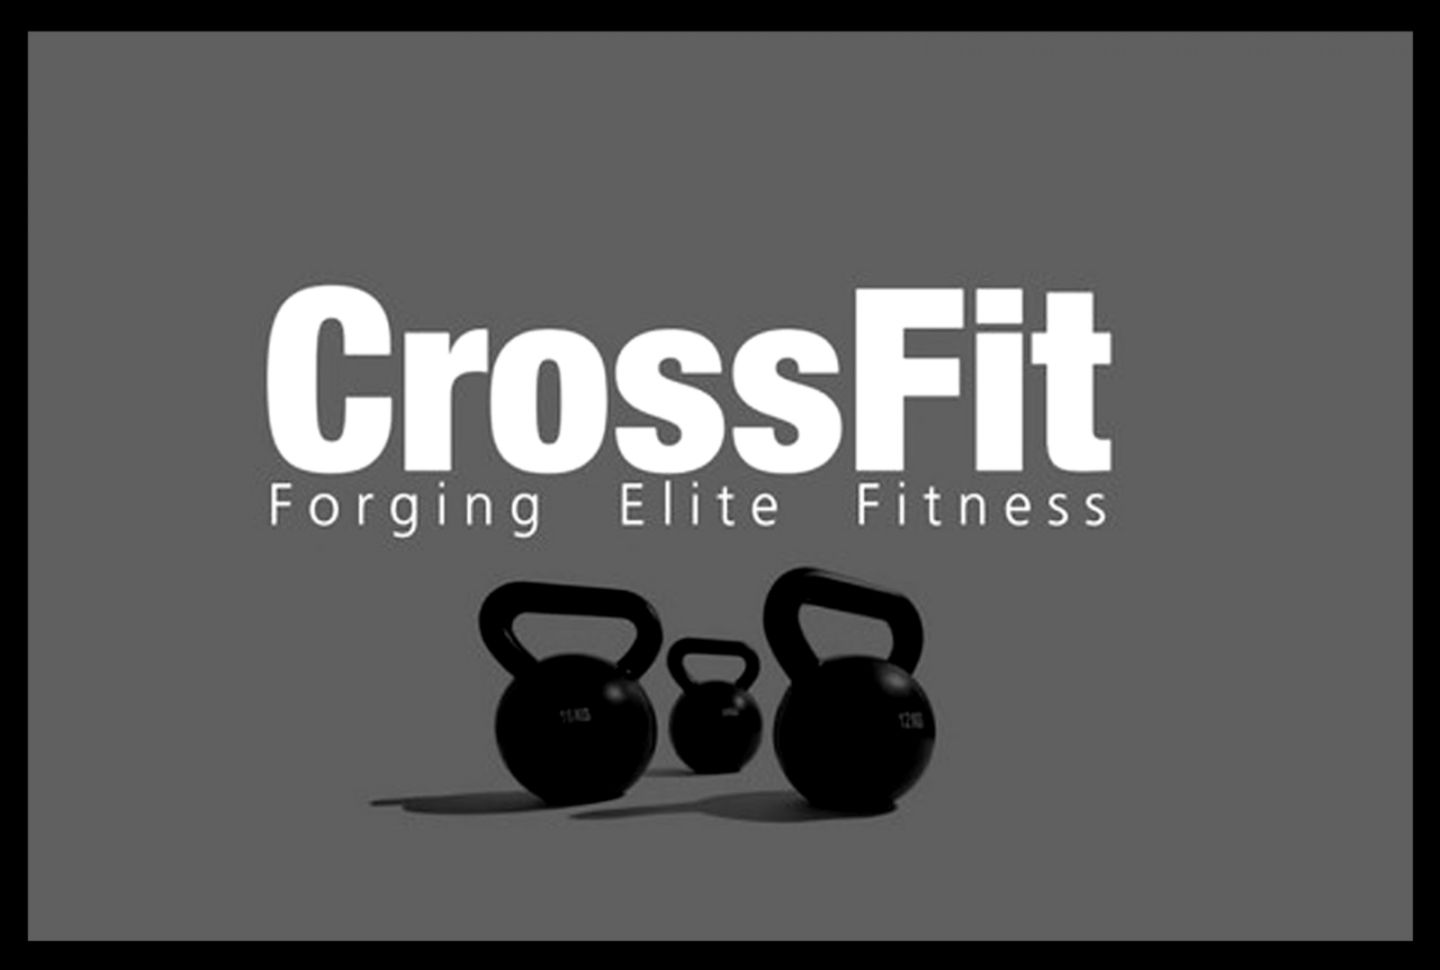 Crossfit Workout HD Wallpaper 2014  HD Wallpaper